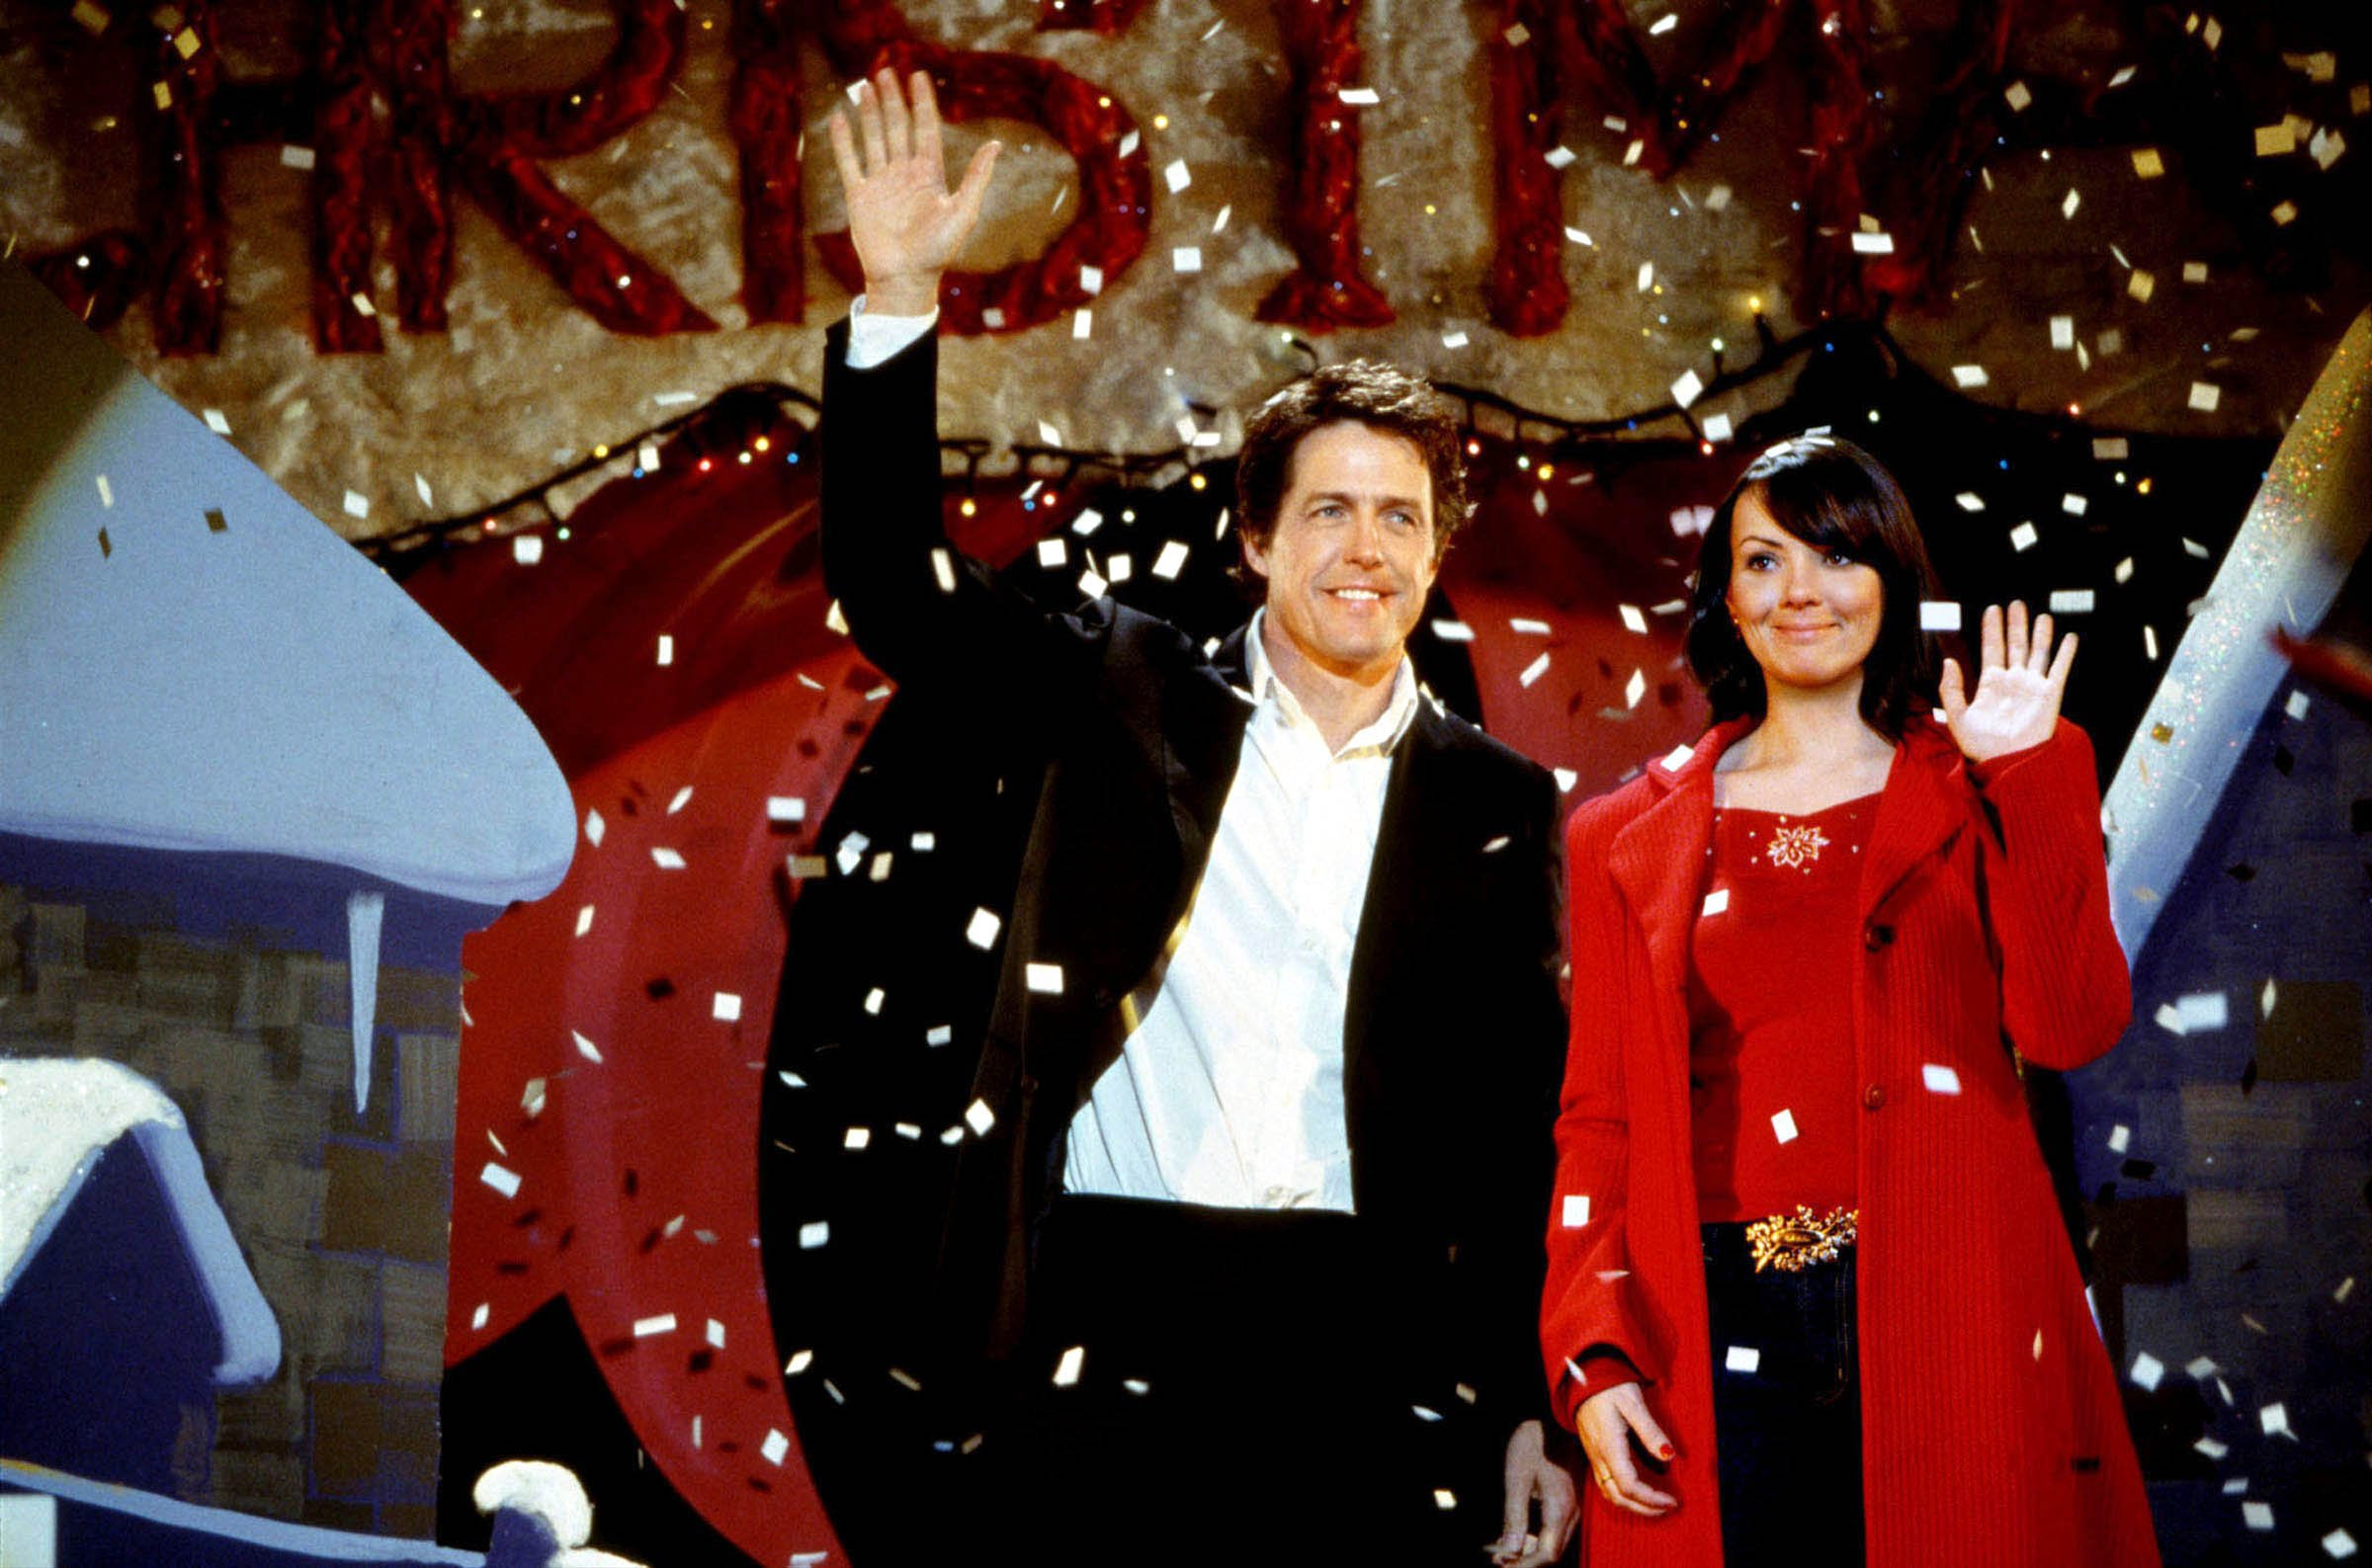 FILM... LOVE ACTUALLY (2003) Hugh Grant (Prime Minister) and Martine McCutcheon (Tea lady).